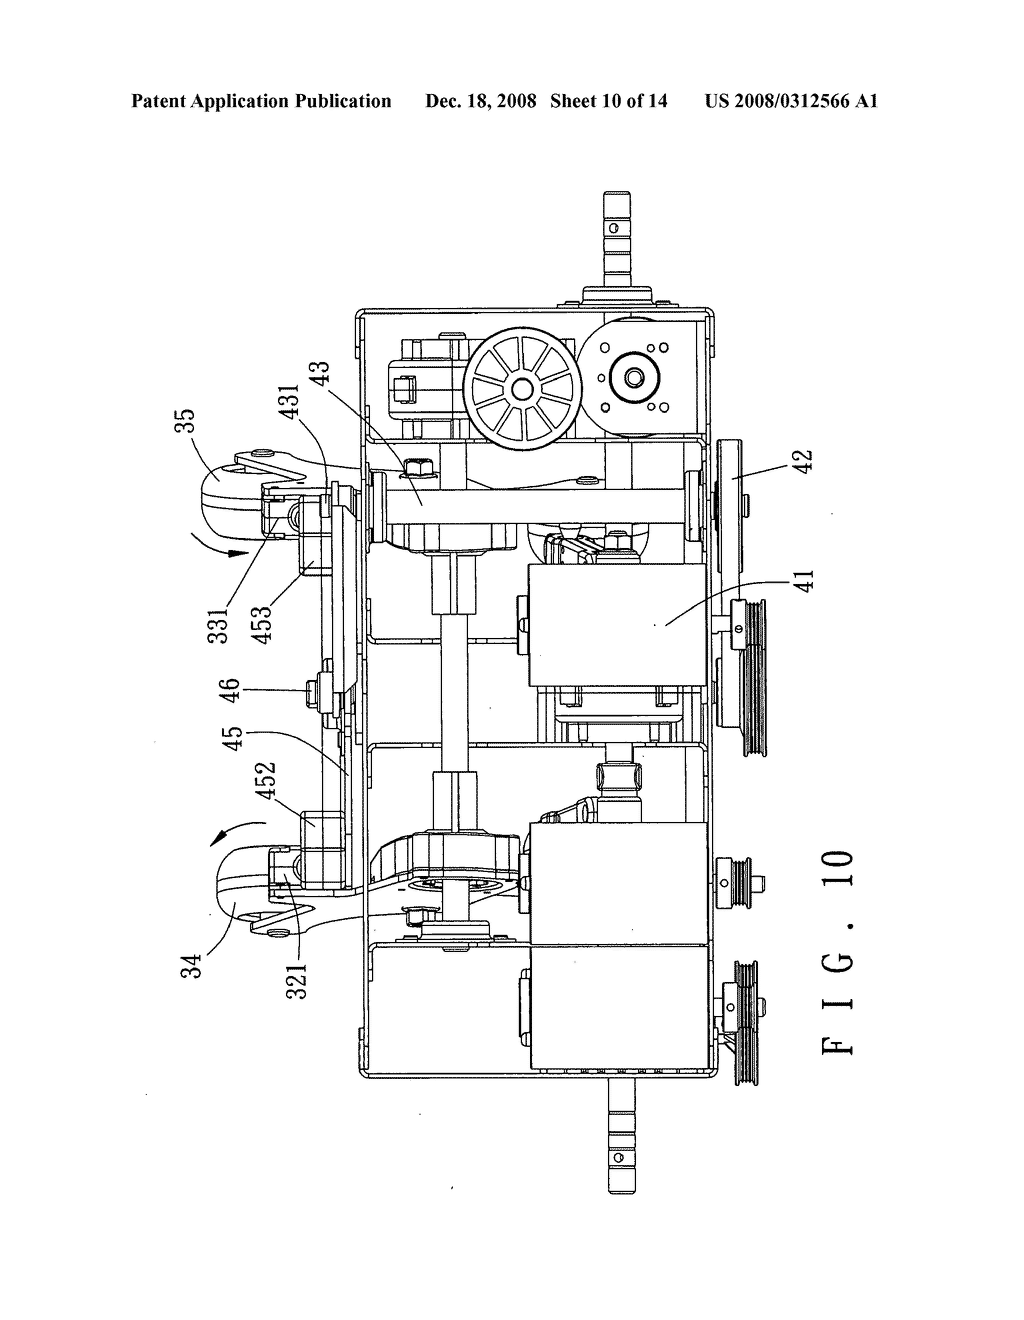 Tapping Mechanism For Use In A Massage Device Of Machine R32 Ac Wiring Diagram Schematic And Image 11